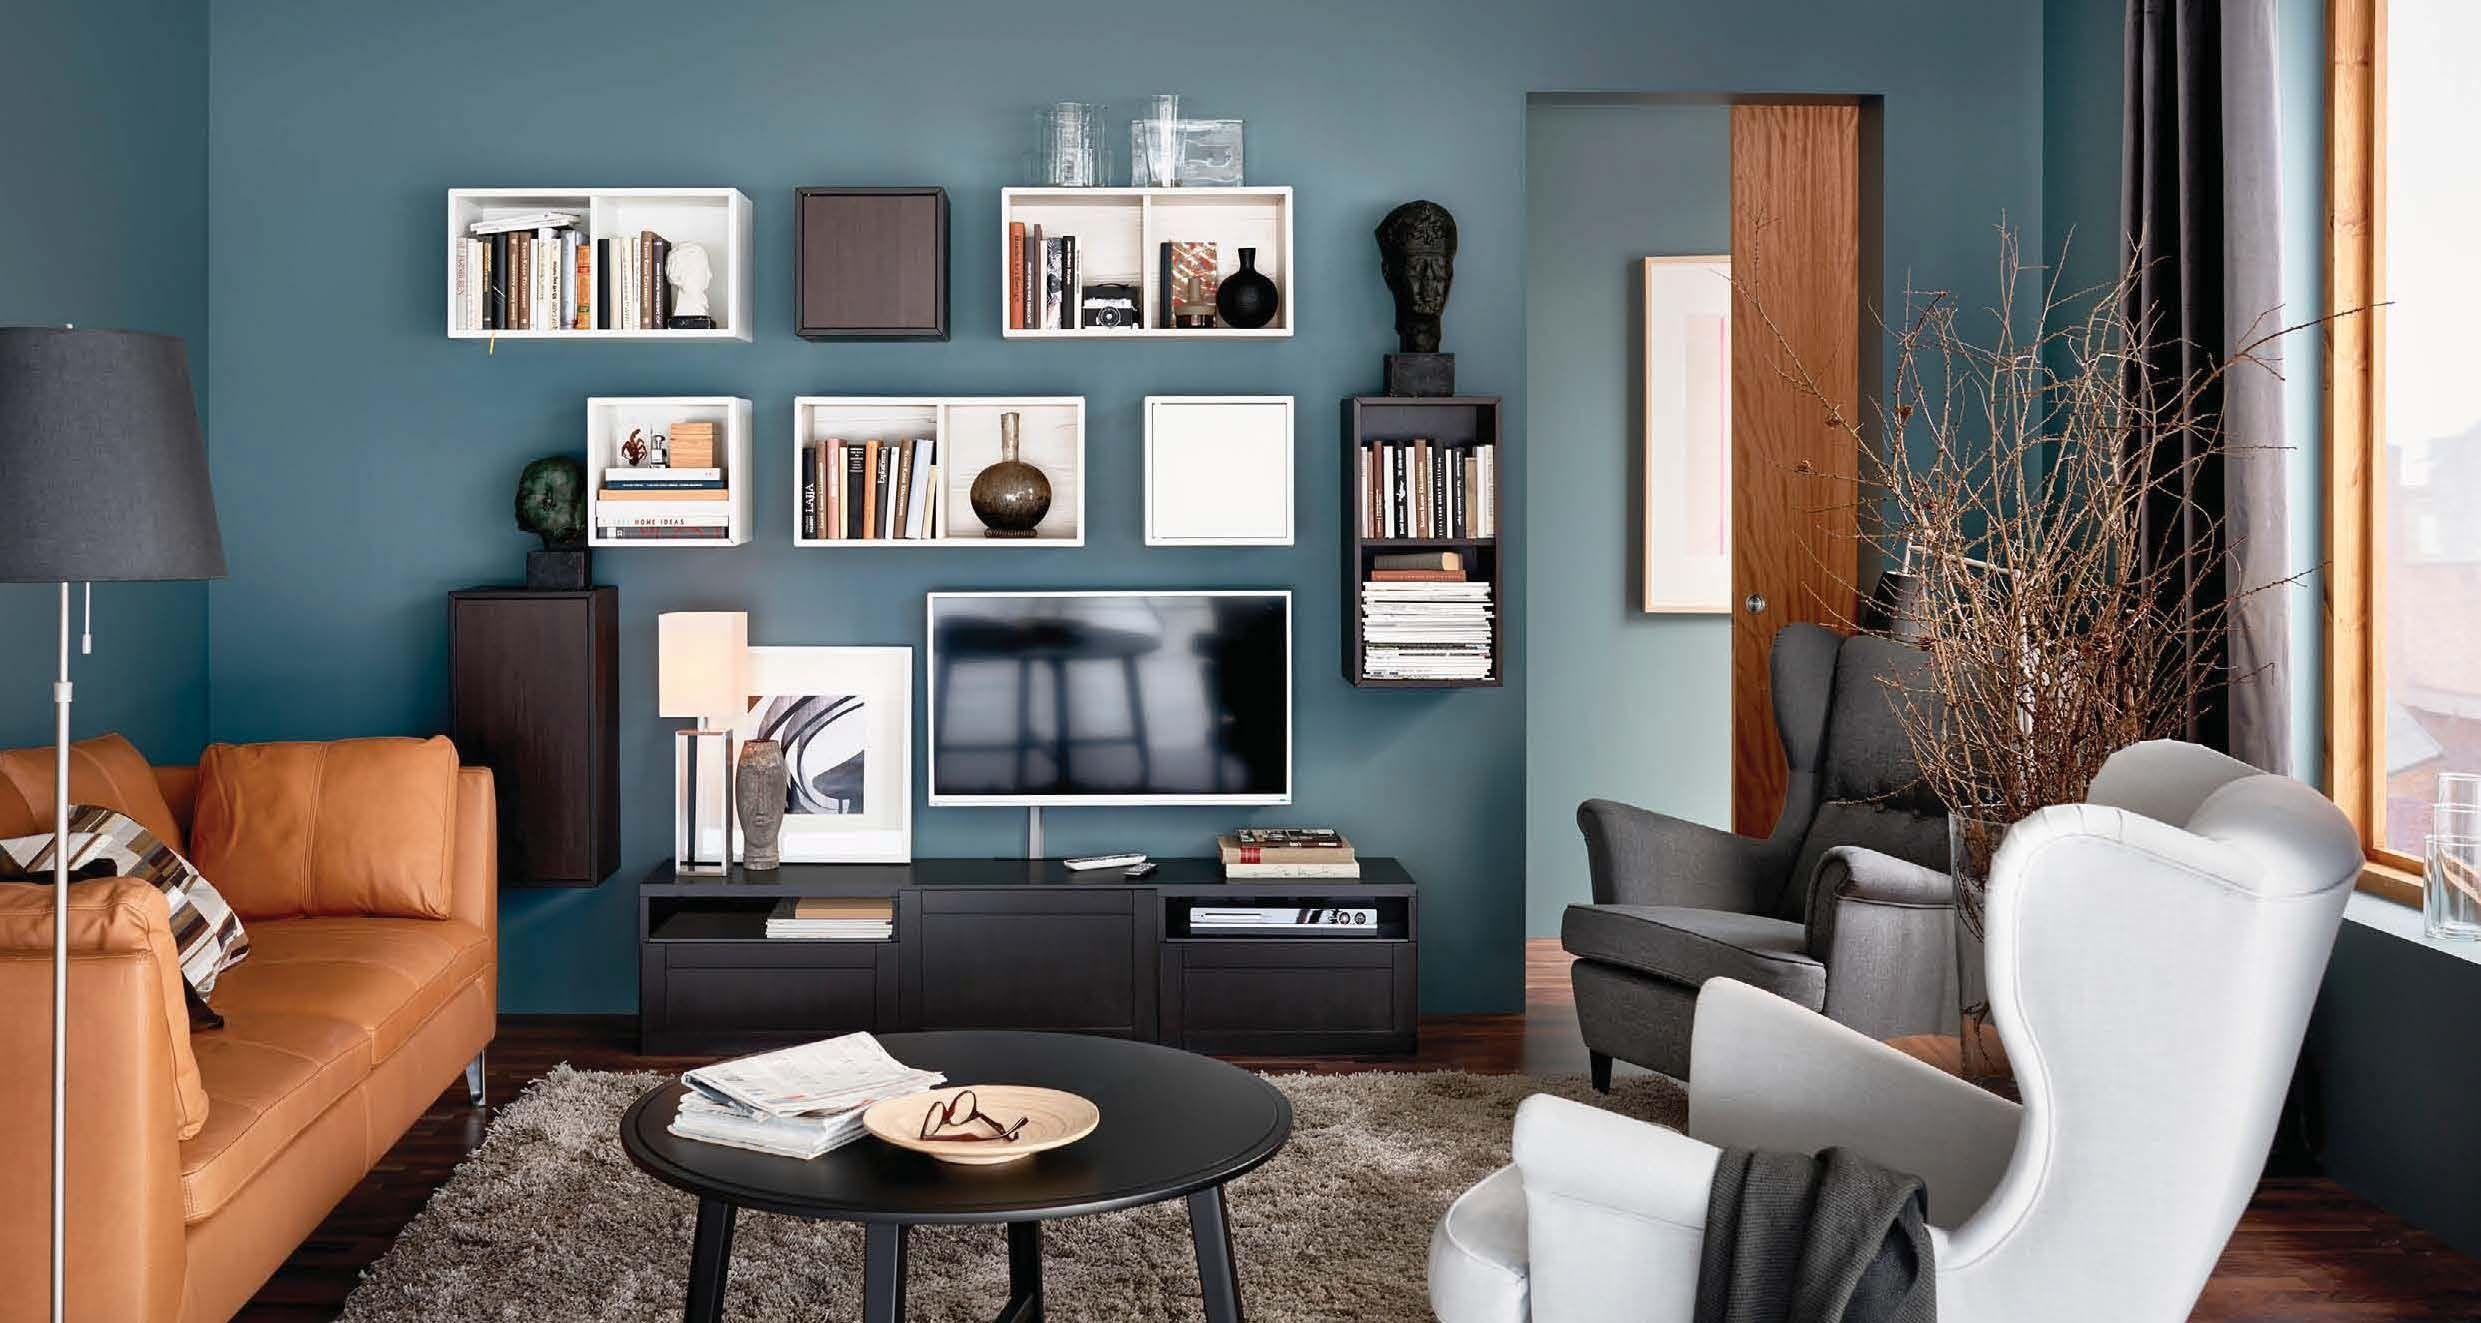 Ikea Livingrooms | Bedroom and Living Room Image Collections